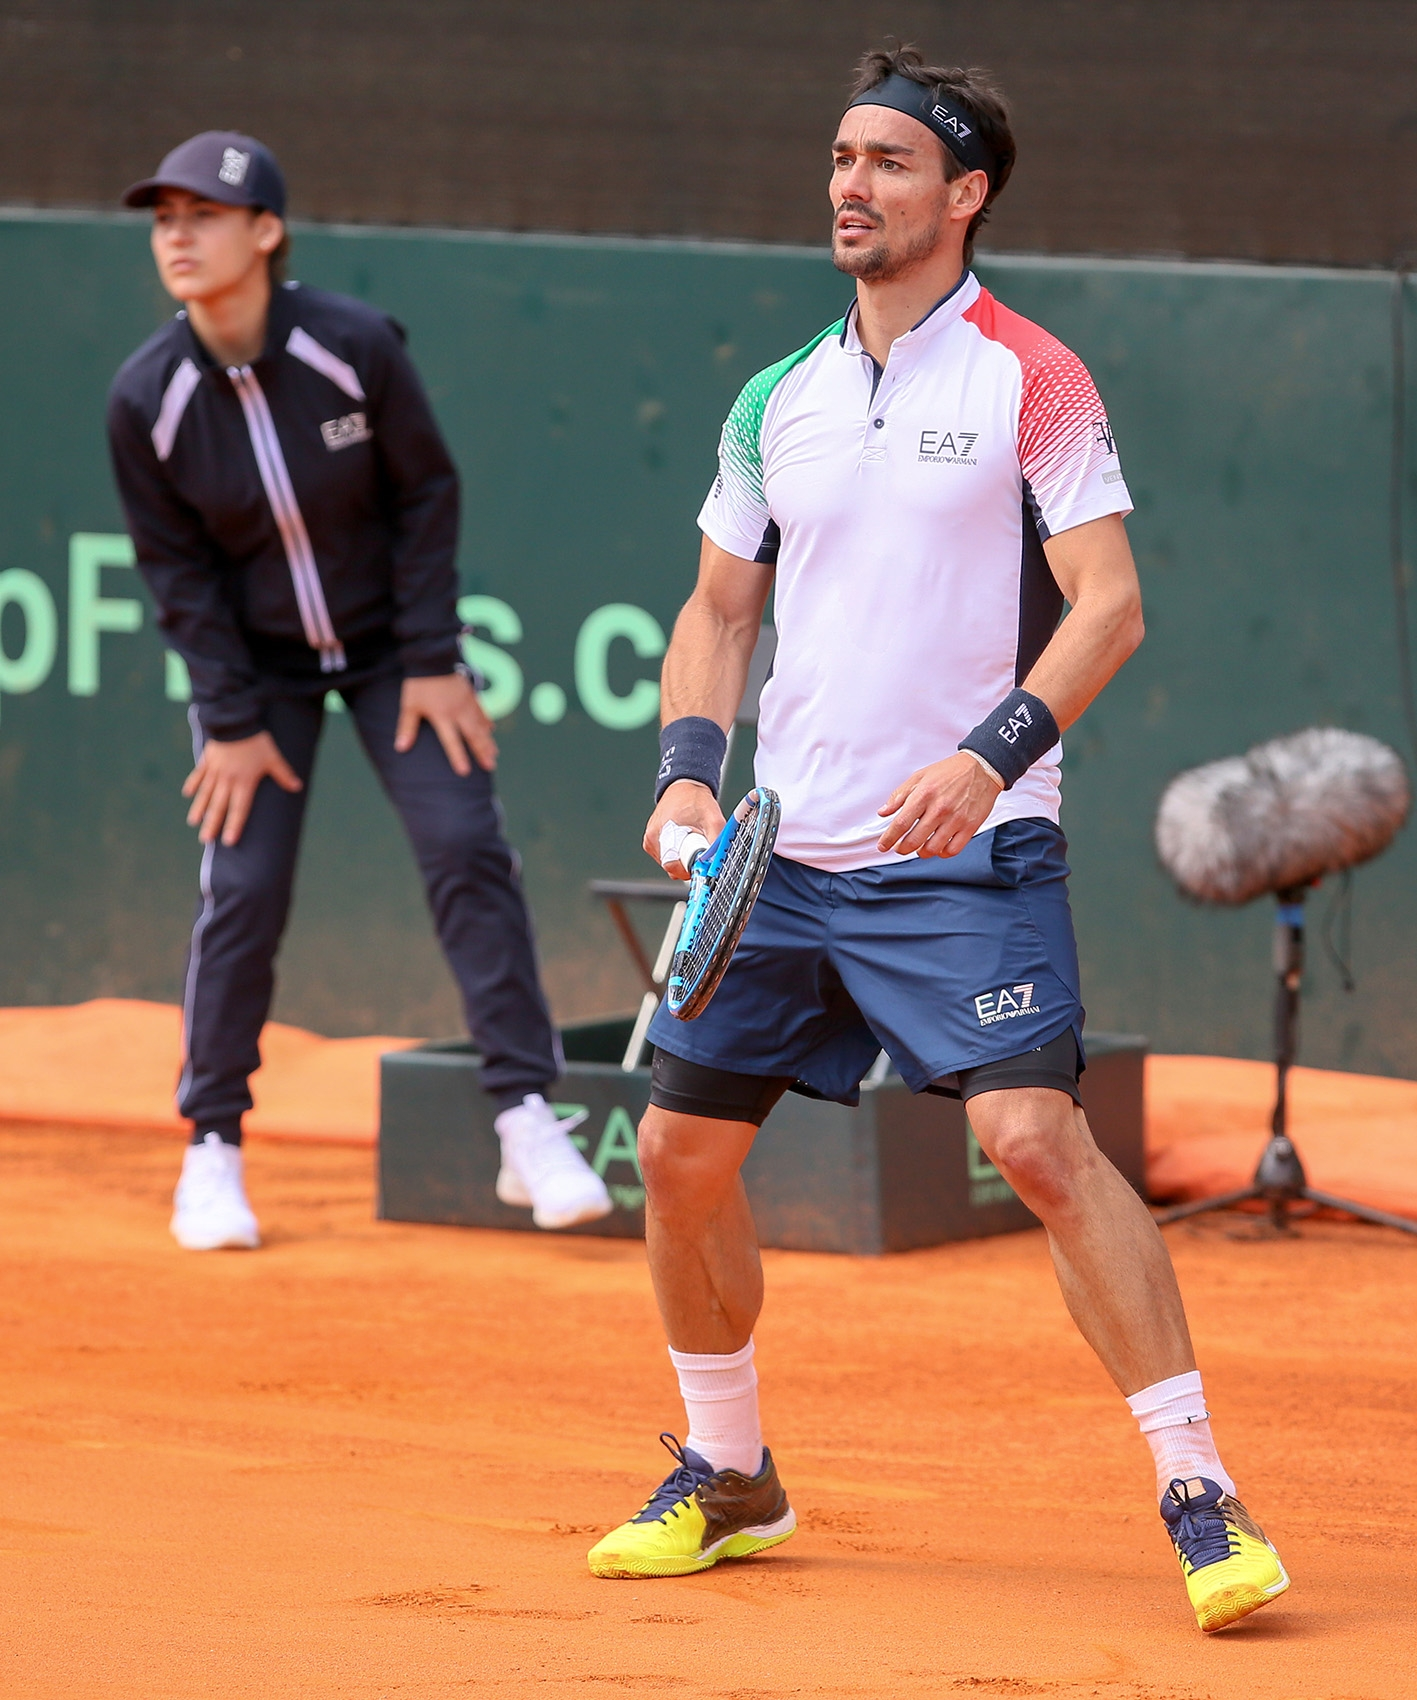 ea7-emporio-armani-designs-the-outfits-for-the-match-between-italy-and-south-korea-at-the-davis-cup_fabio-fognini-1